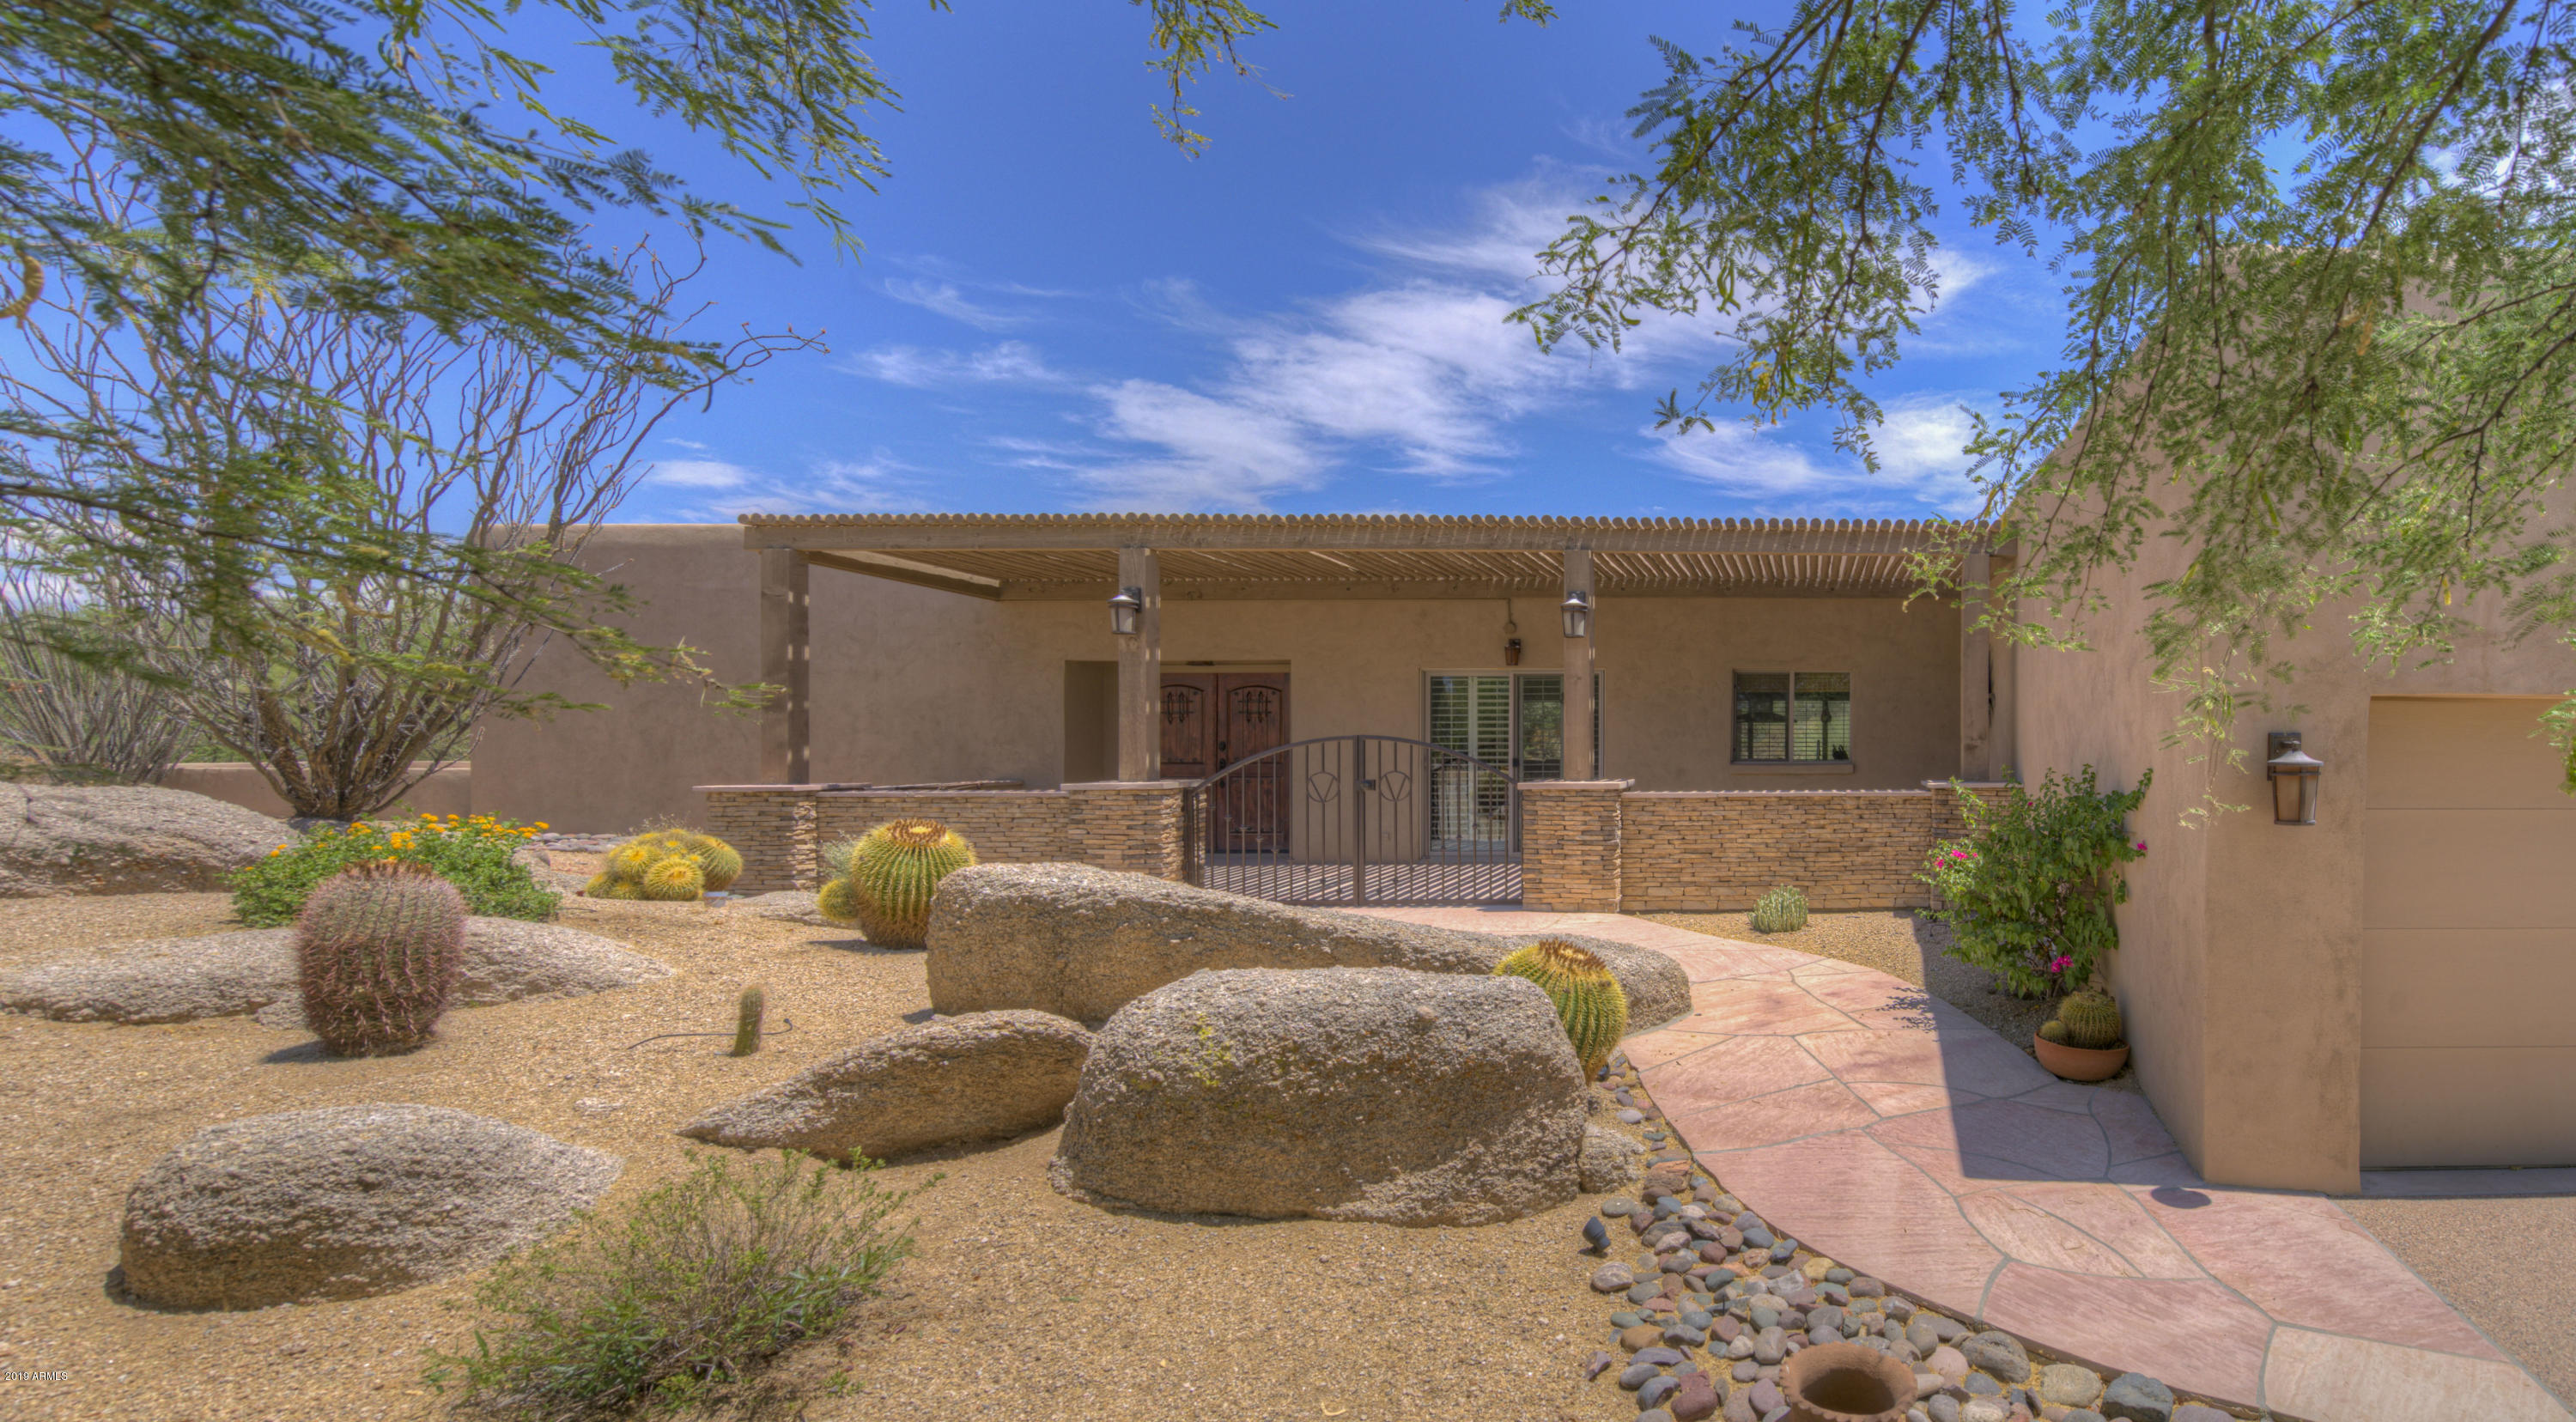 Photo of 1025 N BOULDER Drive, Carefree, AZ 85377